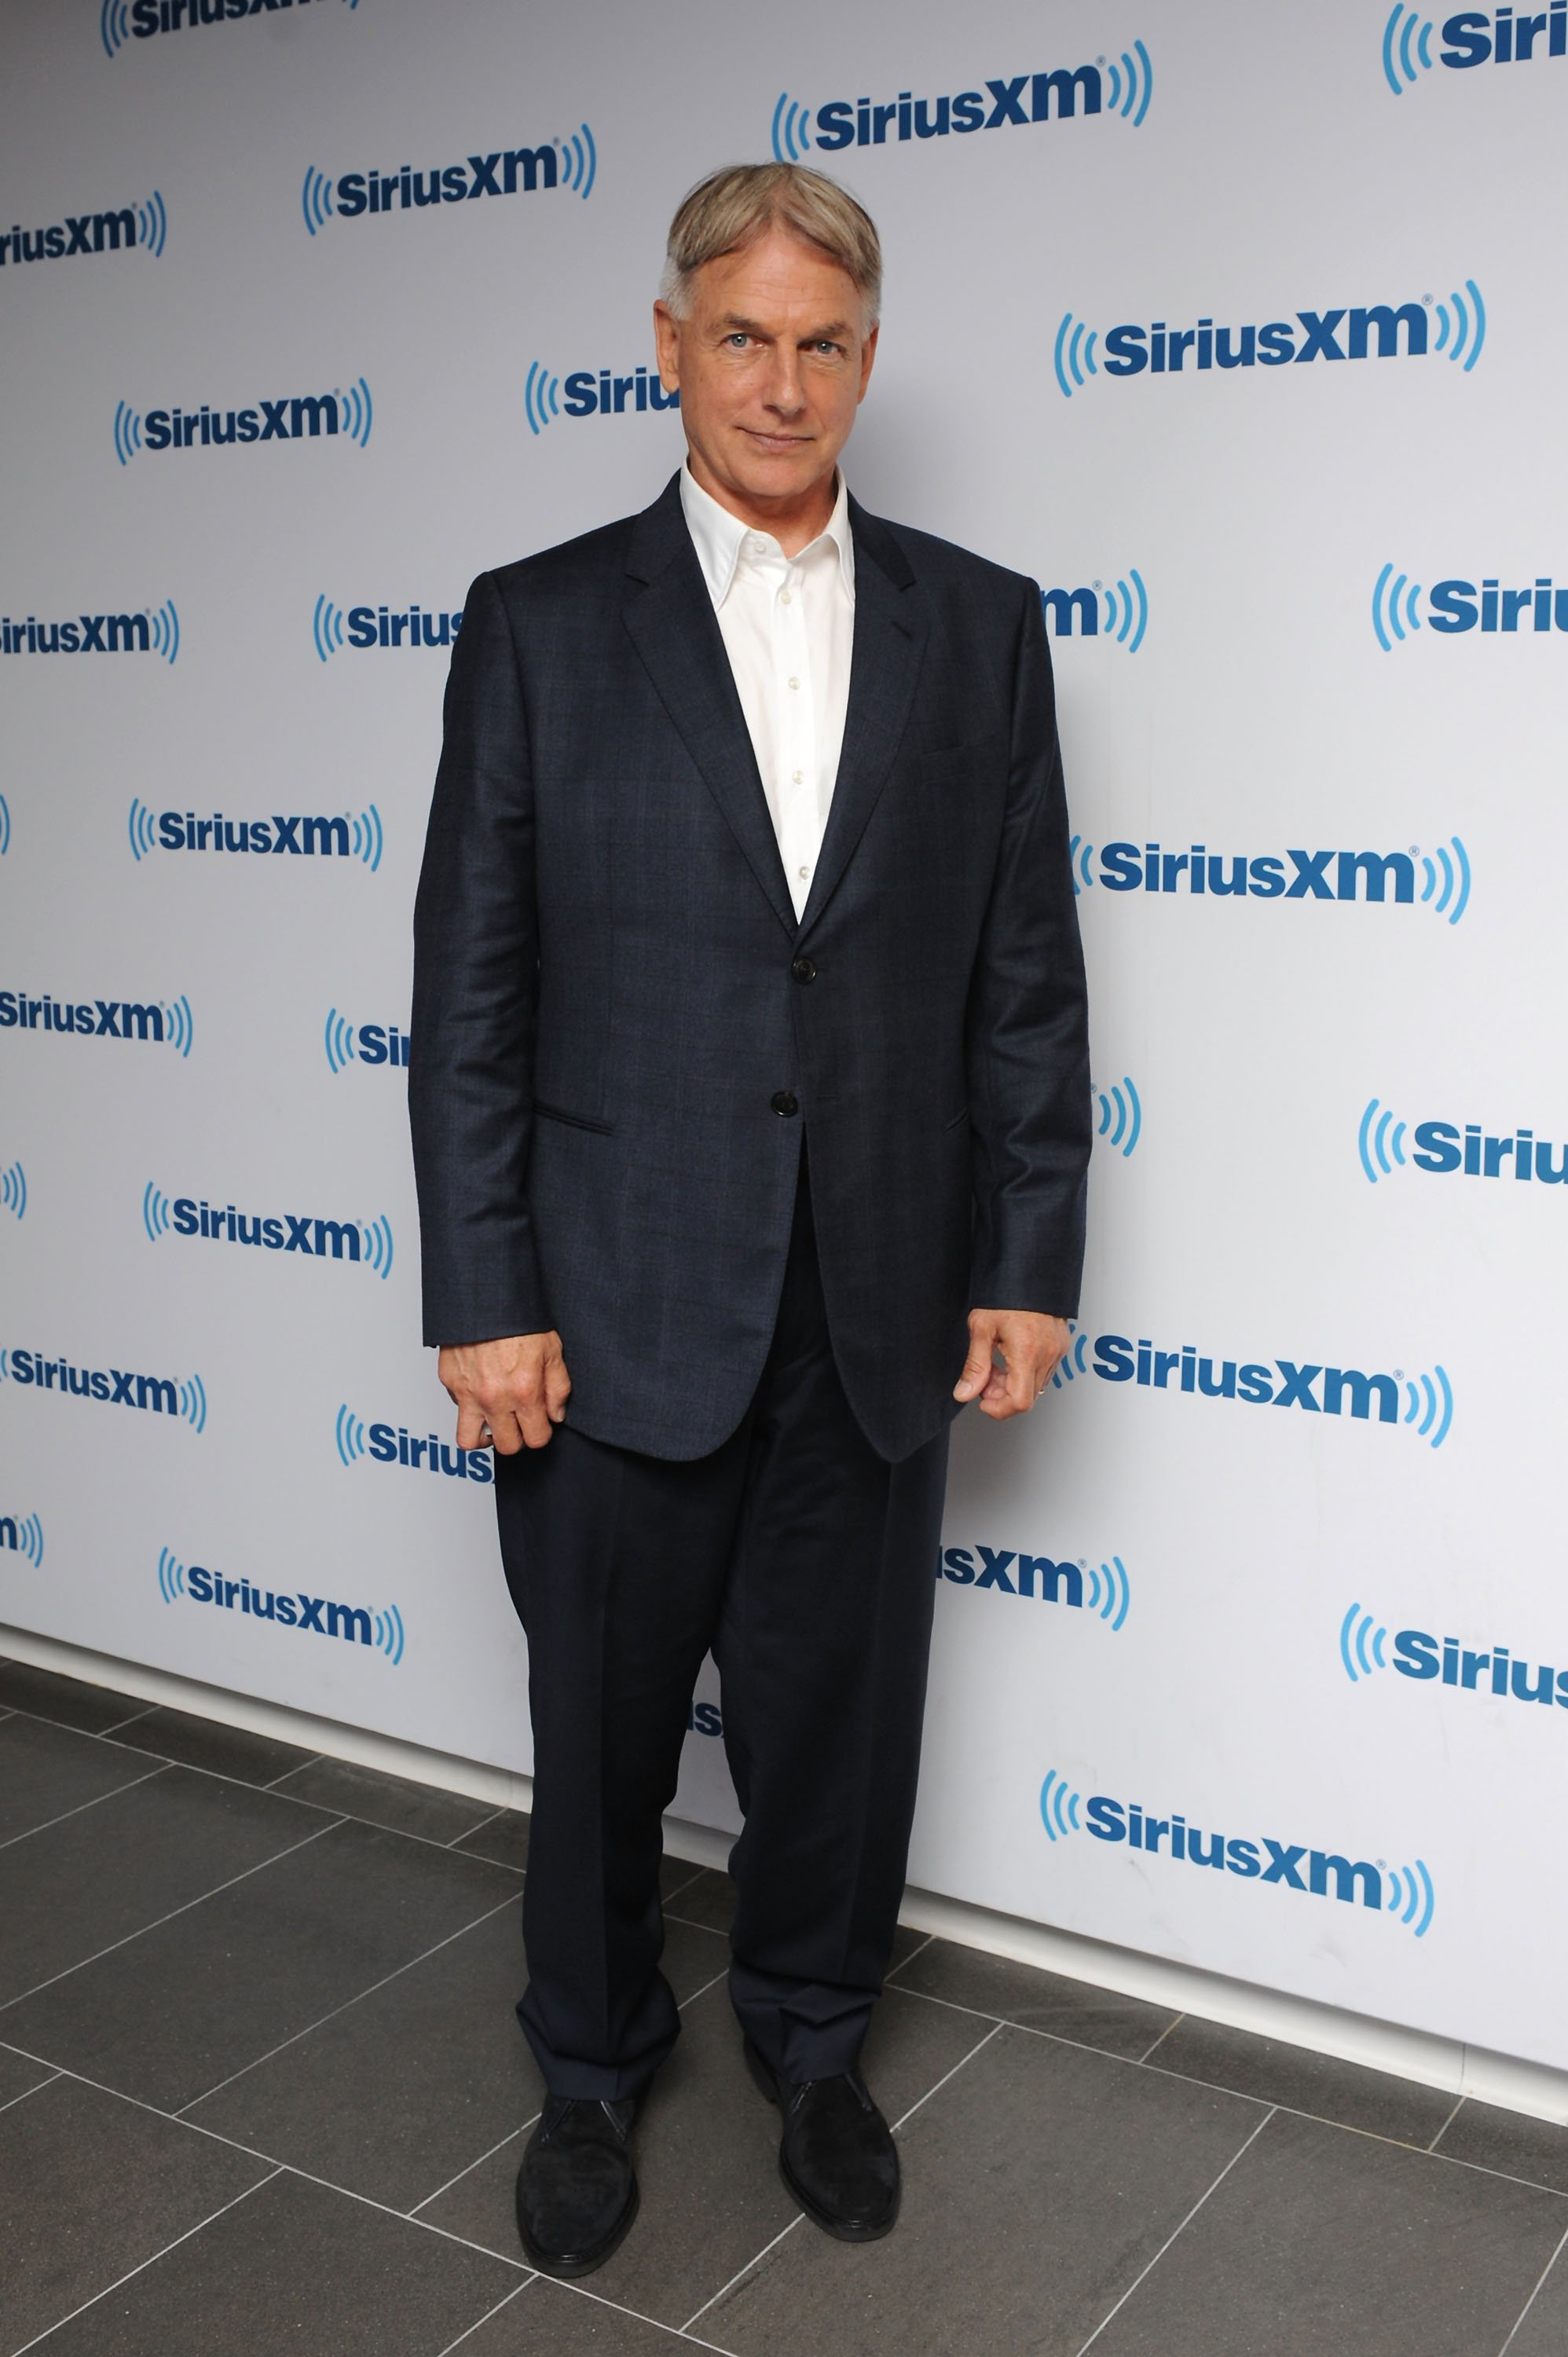 Mark Harmon visits SiriusXM Studios on September 22, 2014 in New York City | Source: Getty Images/Global Images Ukraine